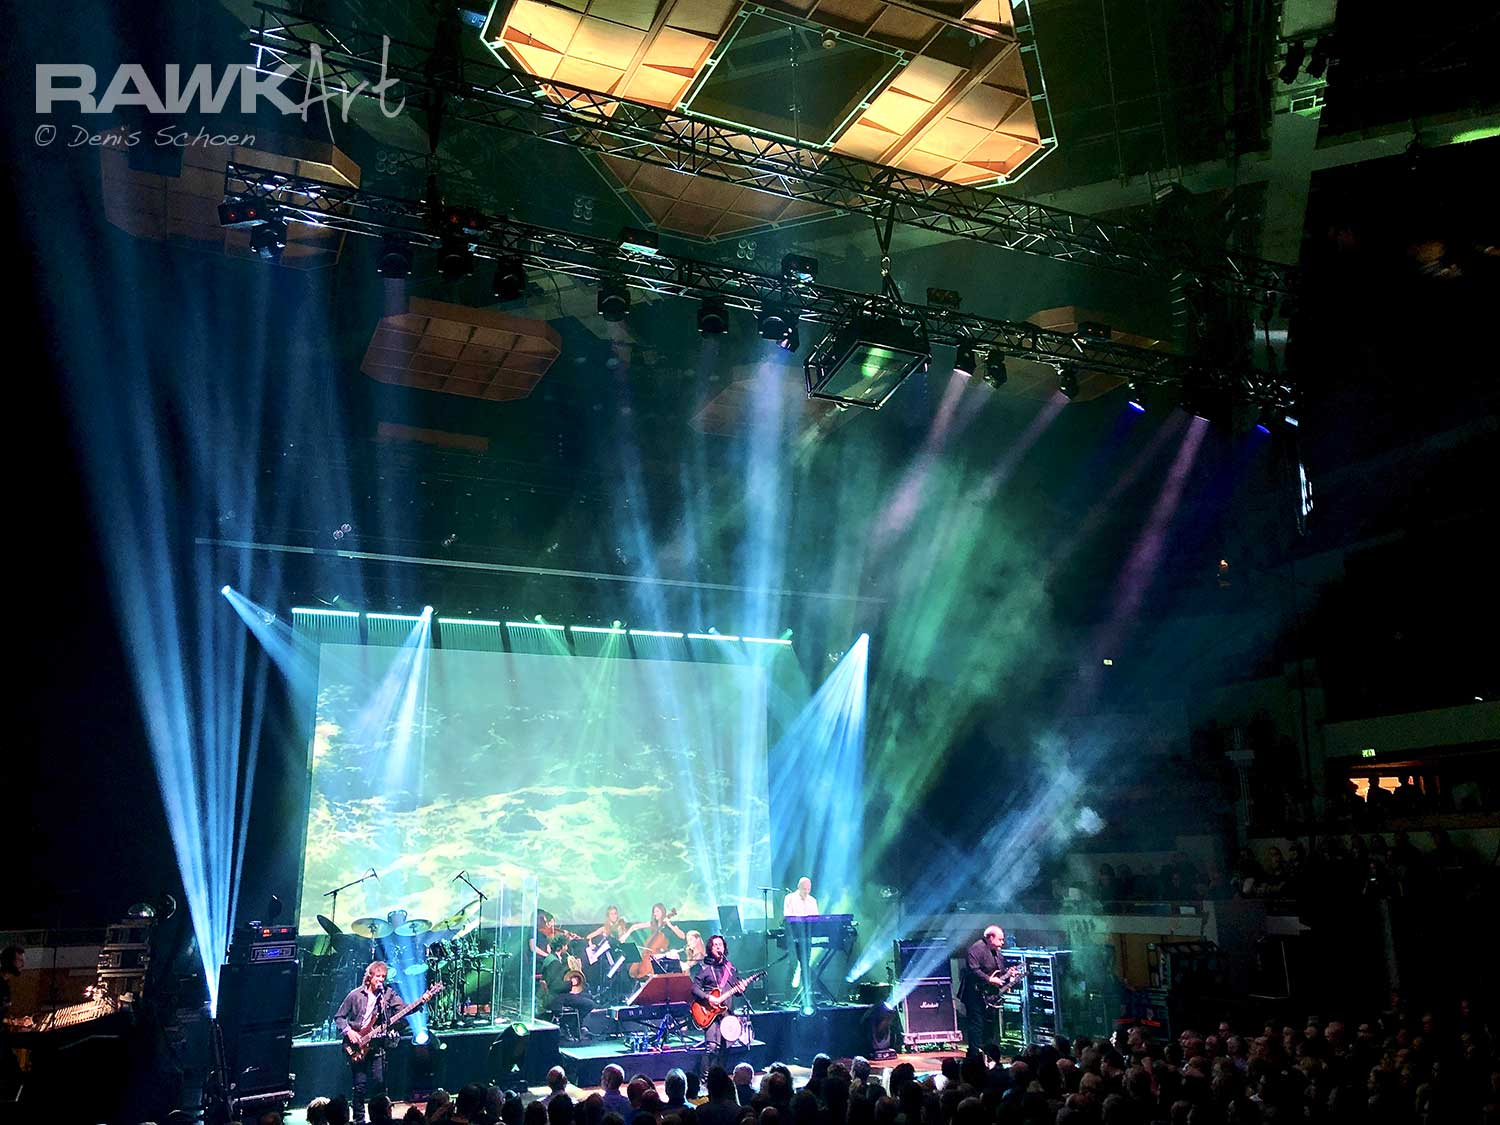 Marillion at TivoliVredenburg Grote Zaal, Utrecht, Netherlands, Marillion With Friends from the Orchestra Live 2019